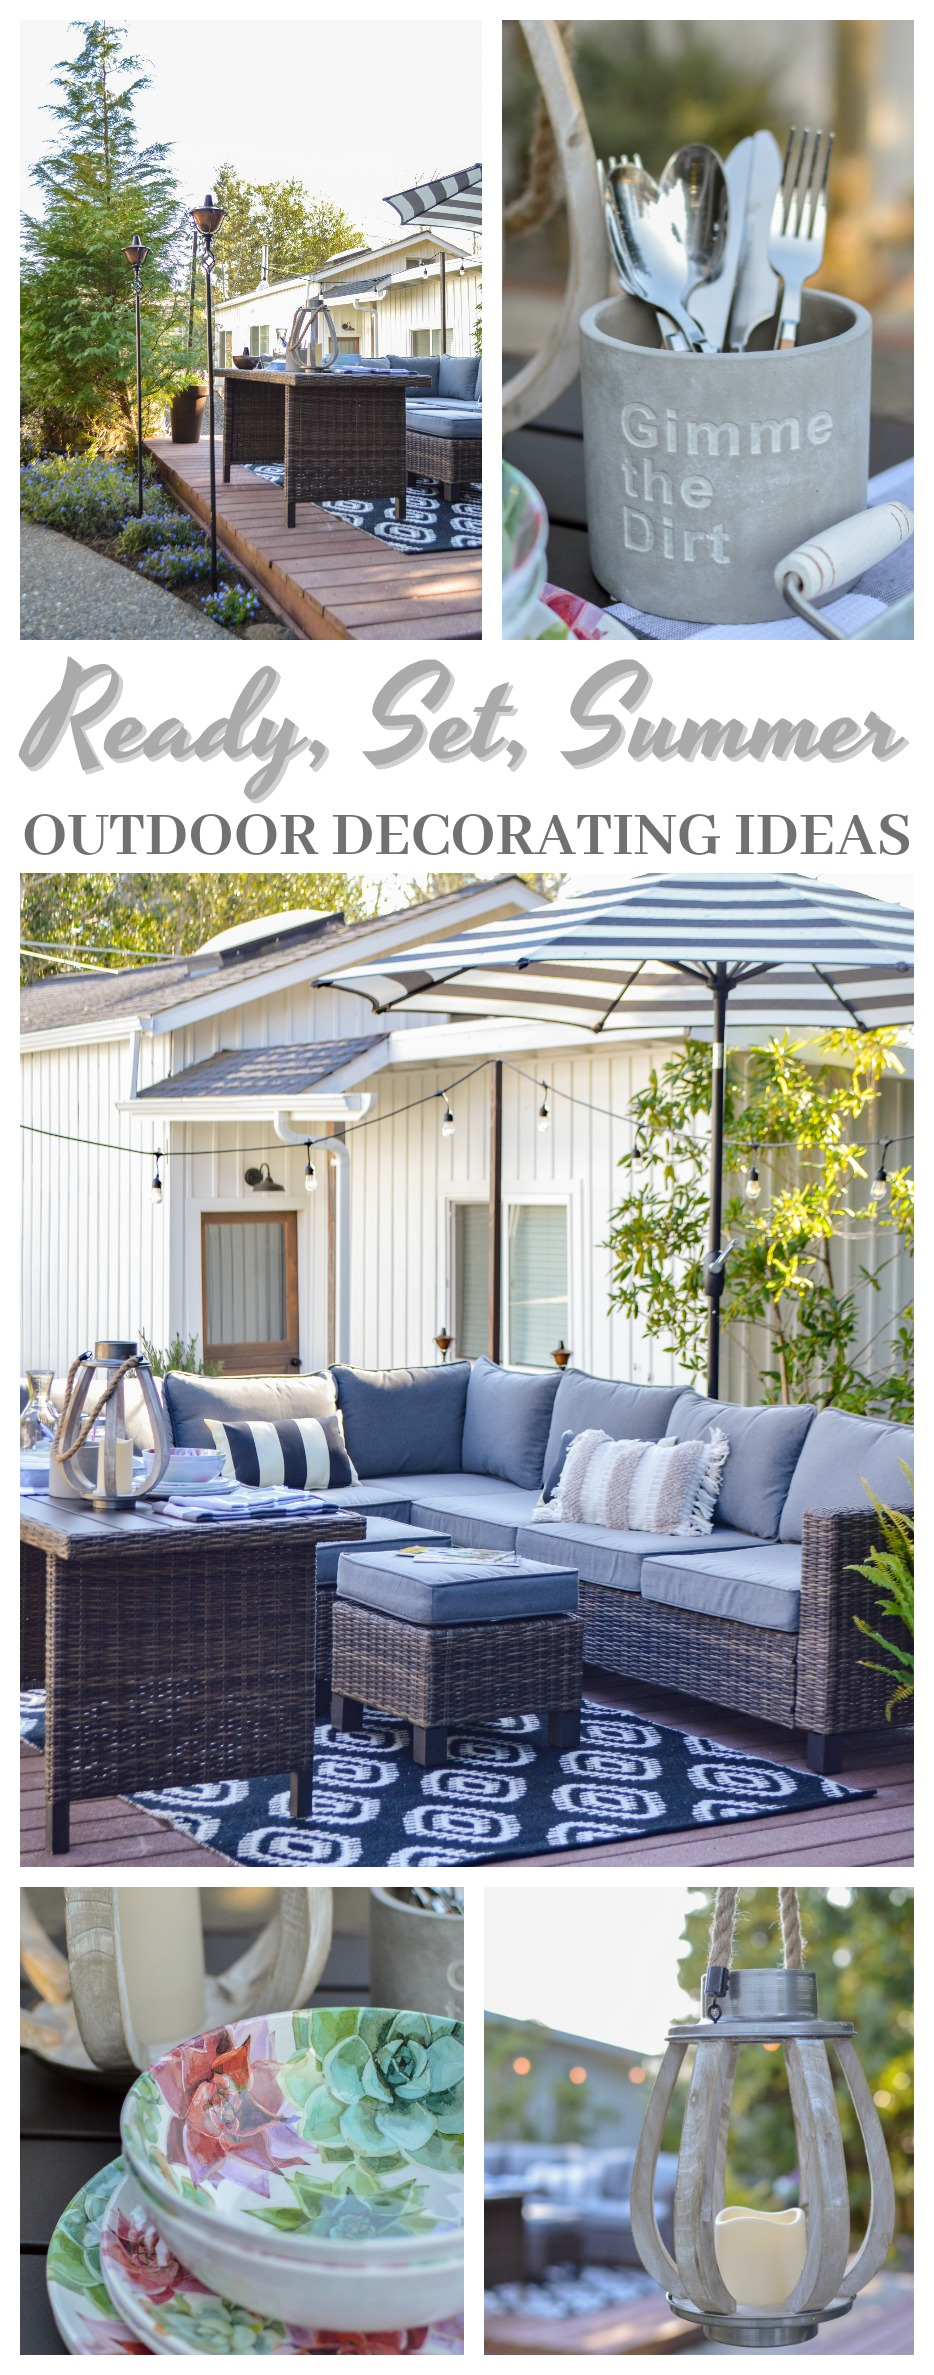 ready, set summer - outdoor entertaining ideas